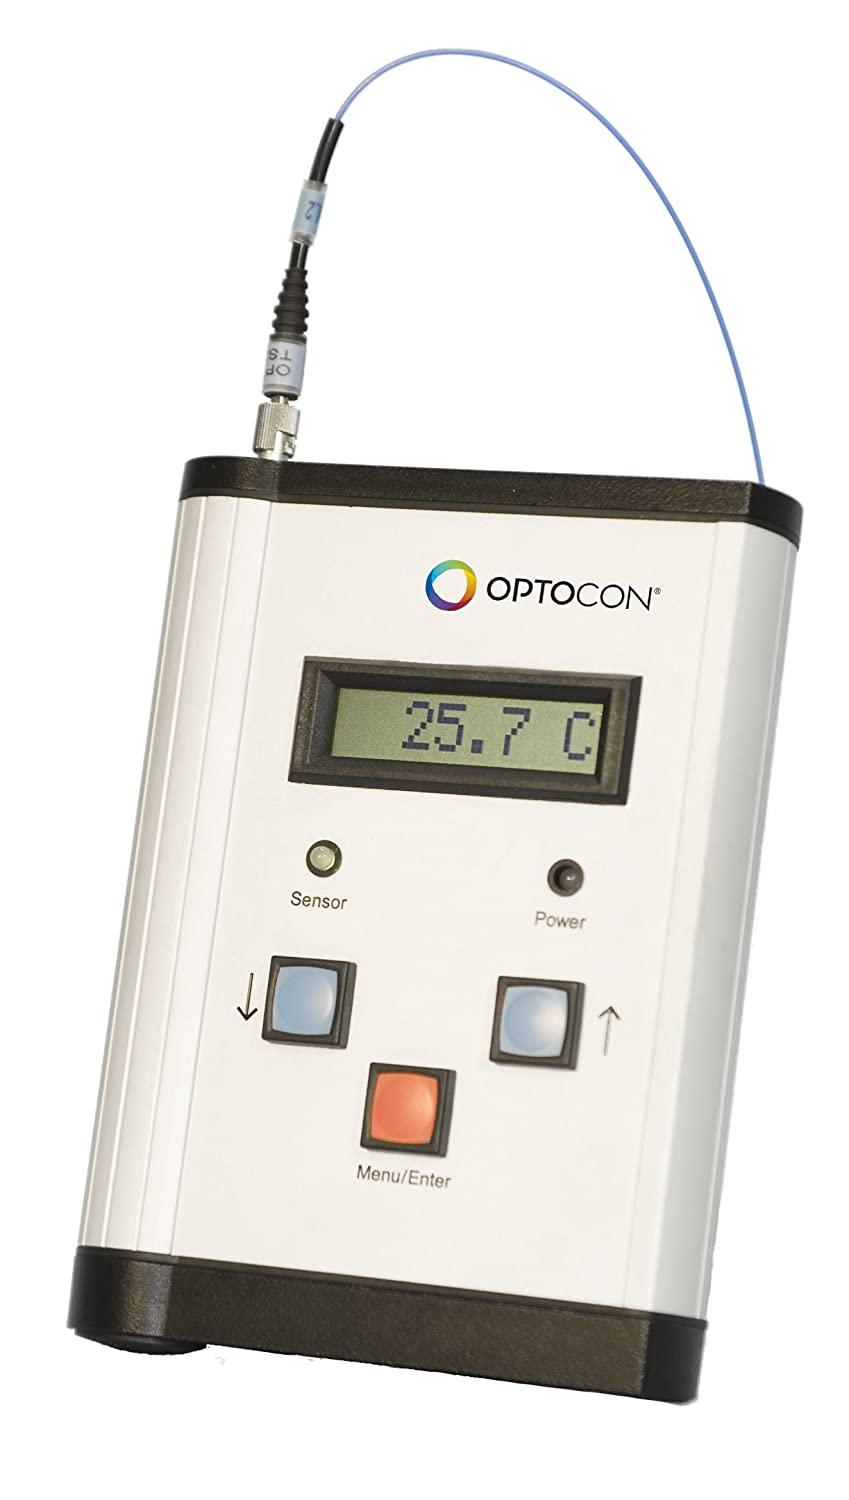 Optocon - Single Channel Handheld Fiber Optic Thermometer System with TS3 sensor